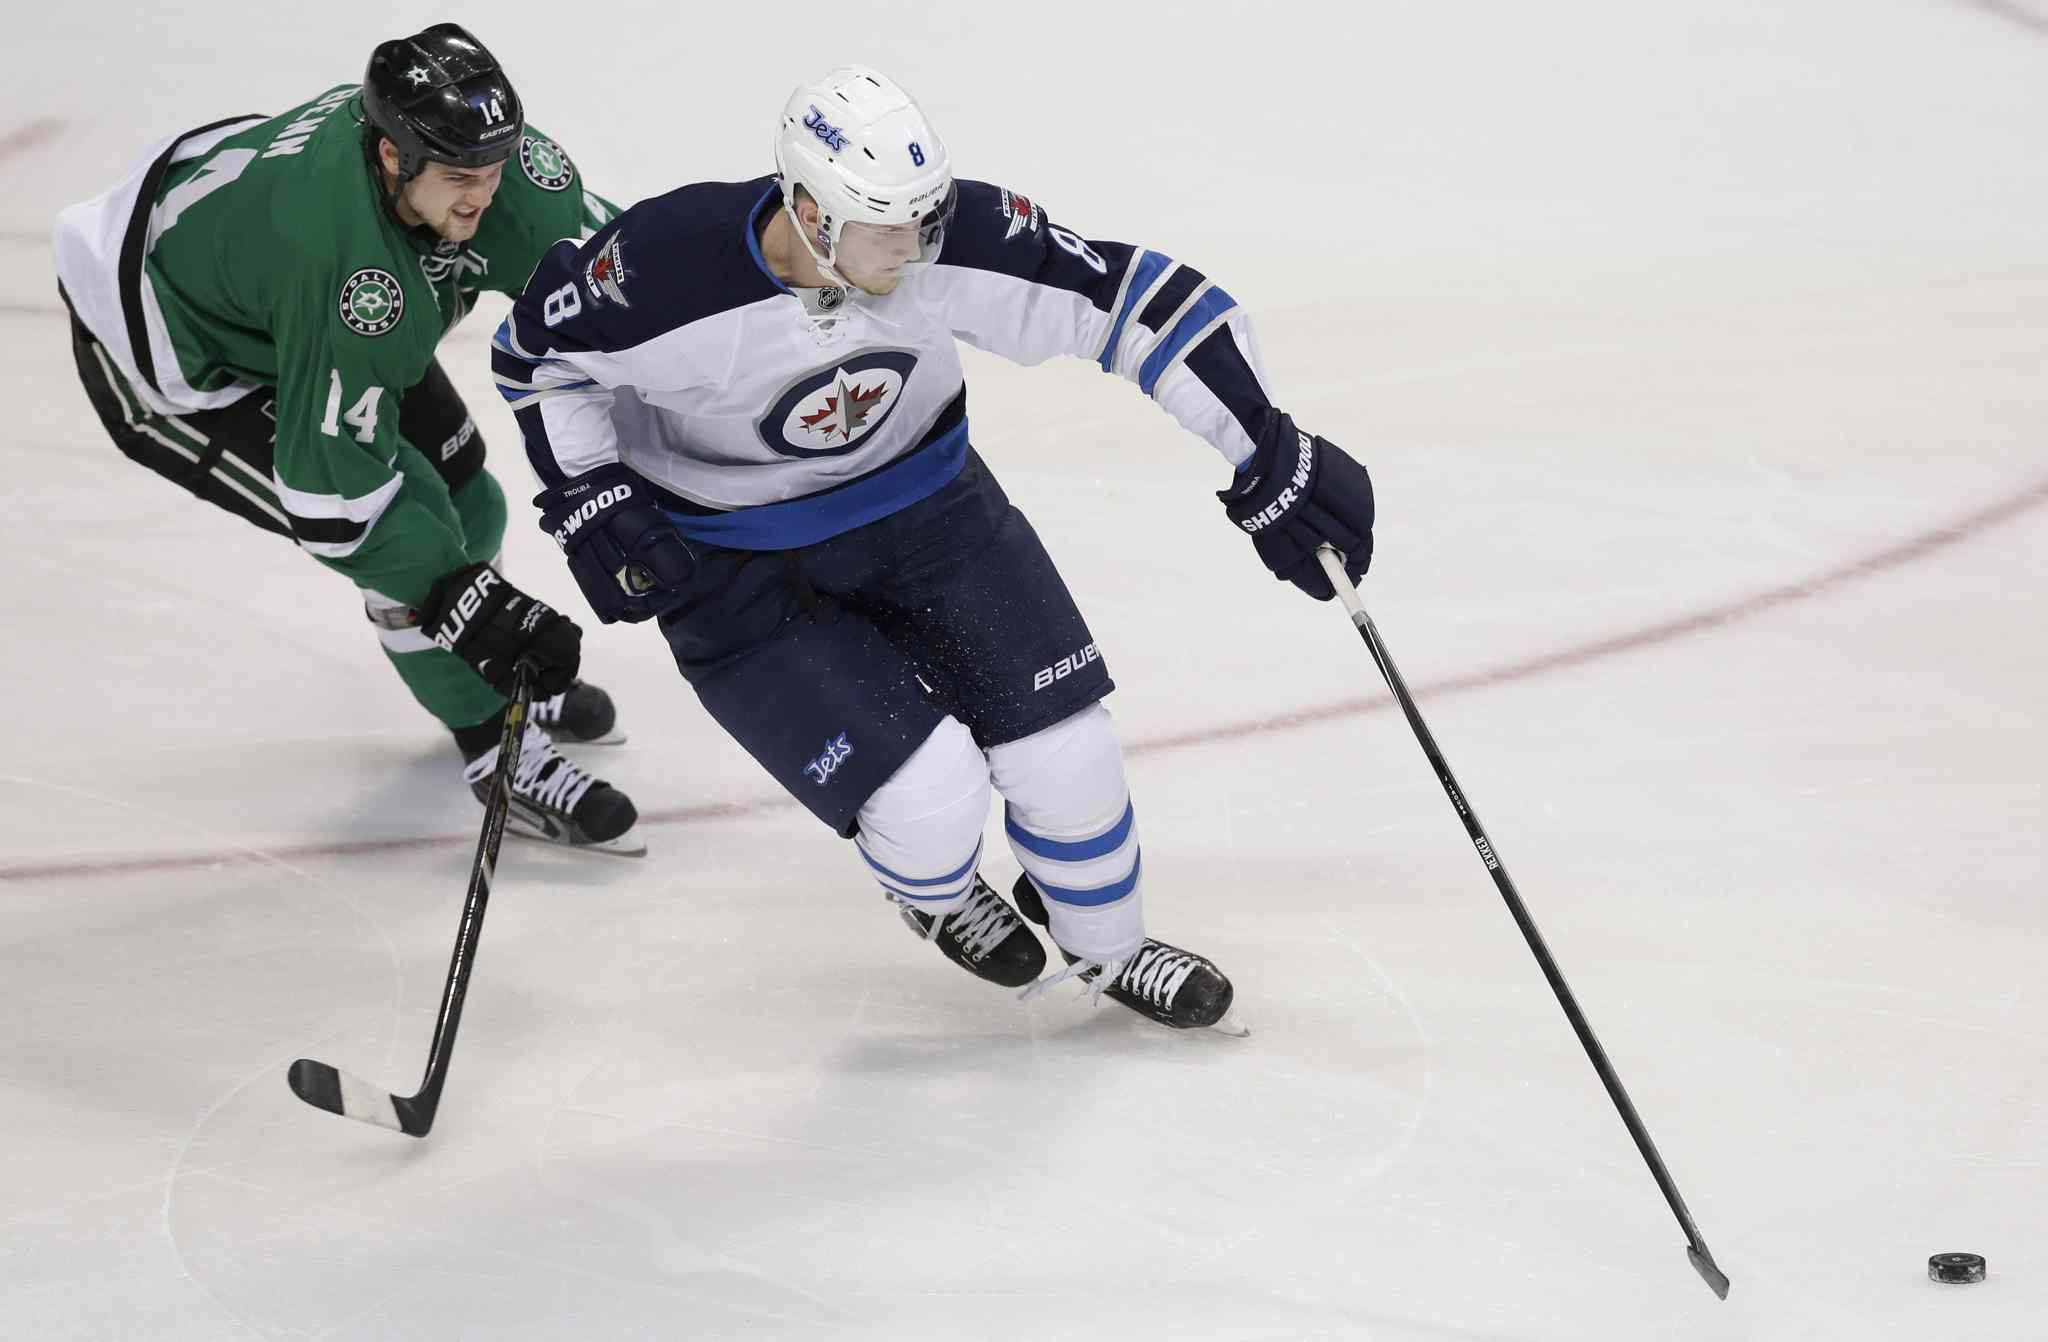 Winnipeg Jets defenceman Jacob Trouba skates with the puck while being pursued by Dallas Stars left-winger Jamie Benn during the first period of an NHL game at American Airlines Arena in Dallas Monday.